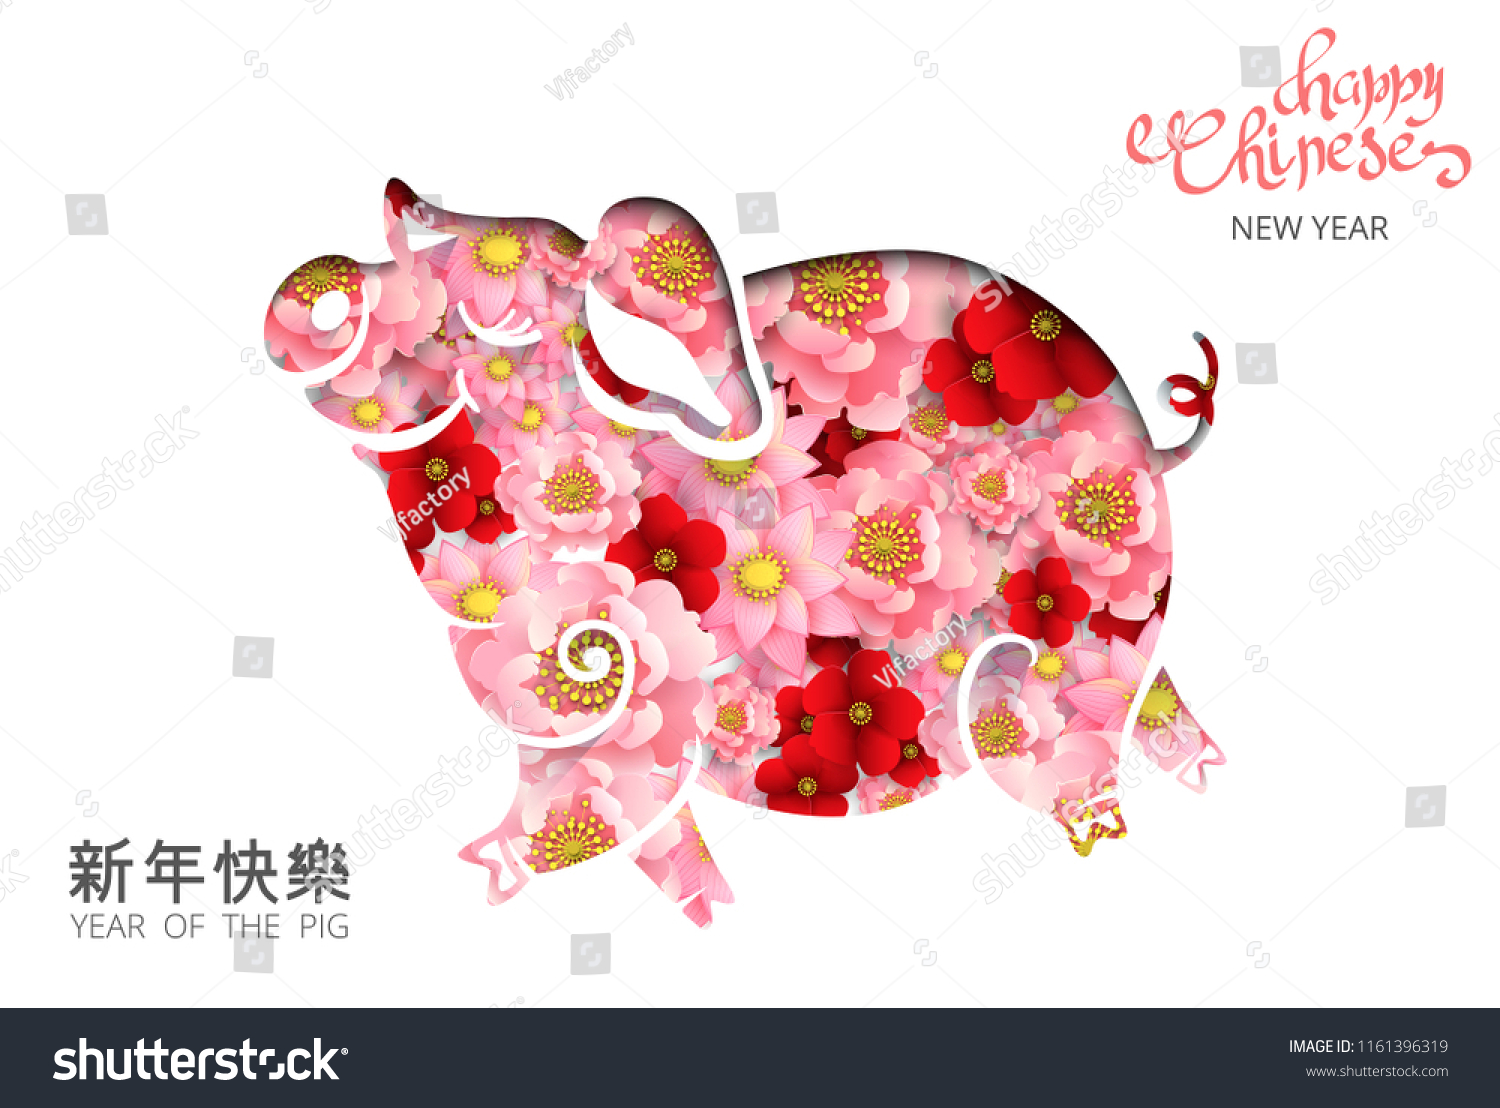 happy chinese new year card with pig and floral pattern greeting card or festive poster